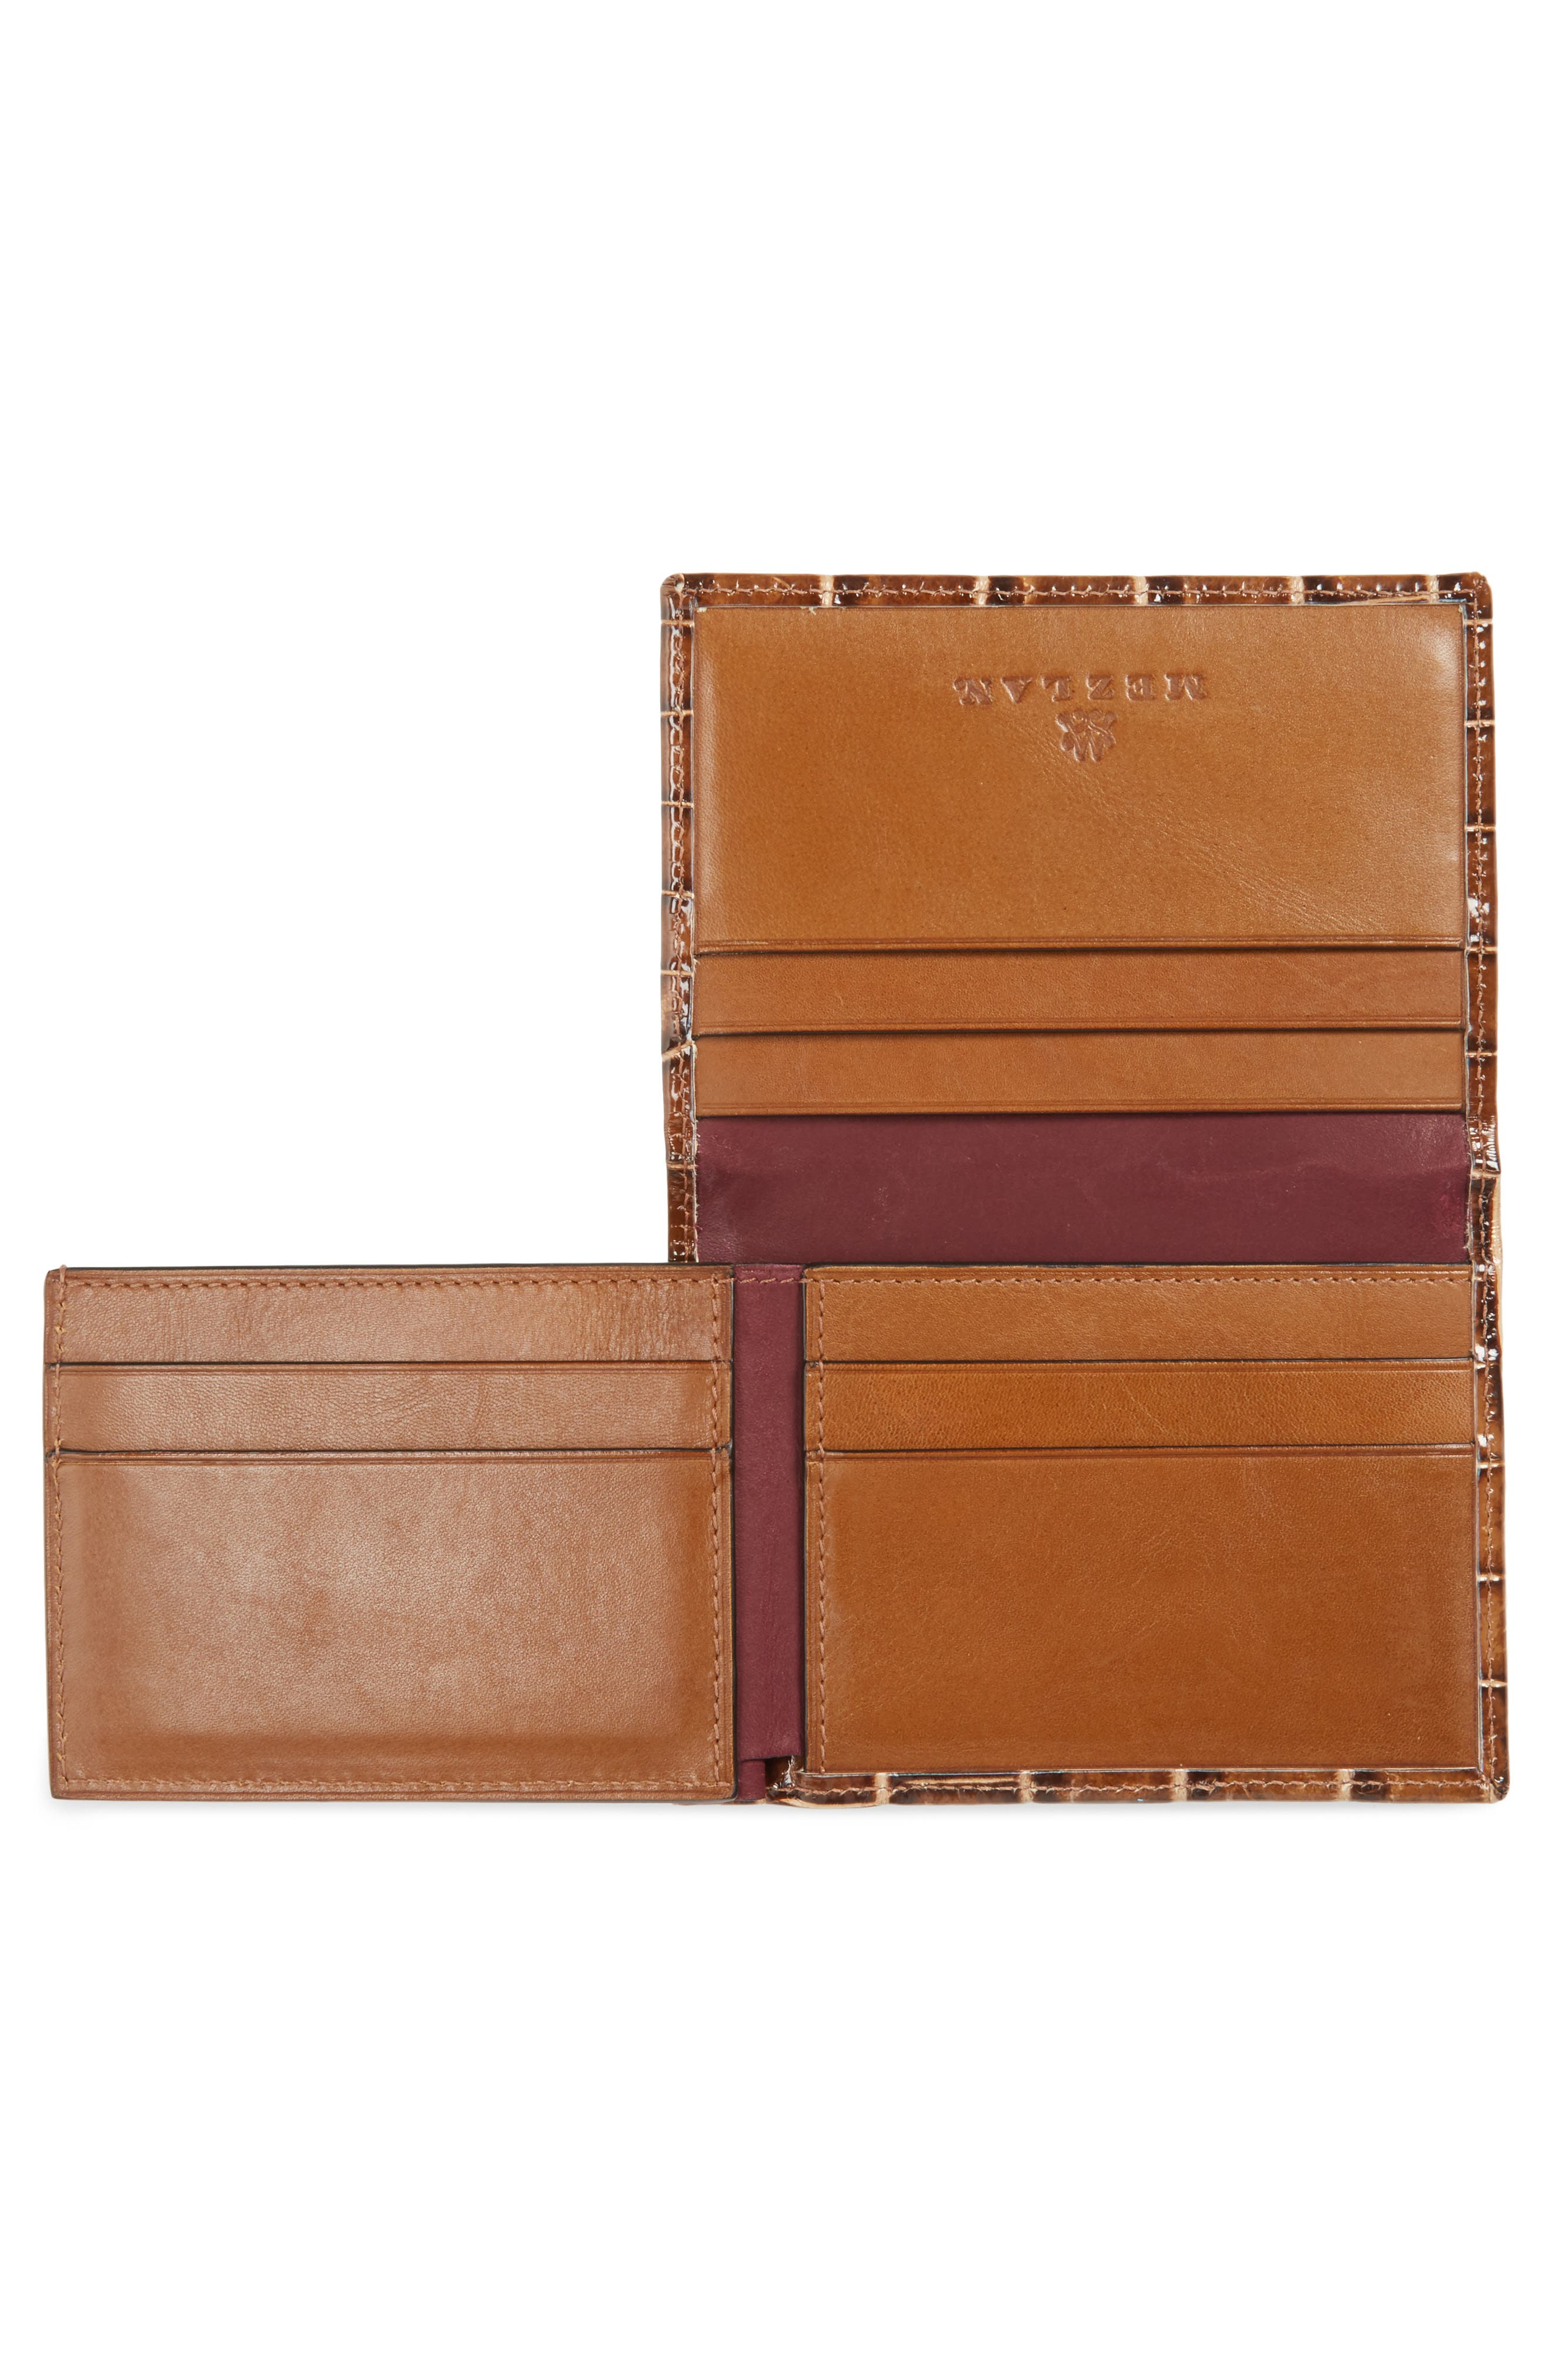 Alligator Leather Trifold Wallet,                             Alternate thumbnail 2, color,                             Honey/ Beige